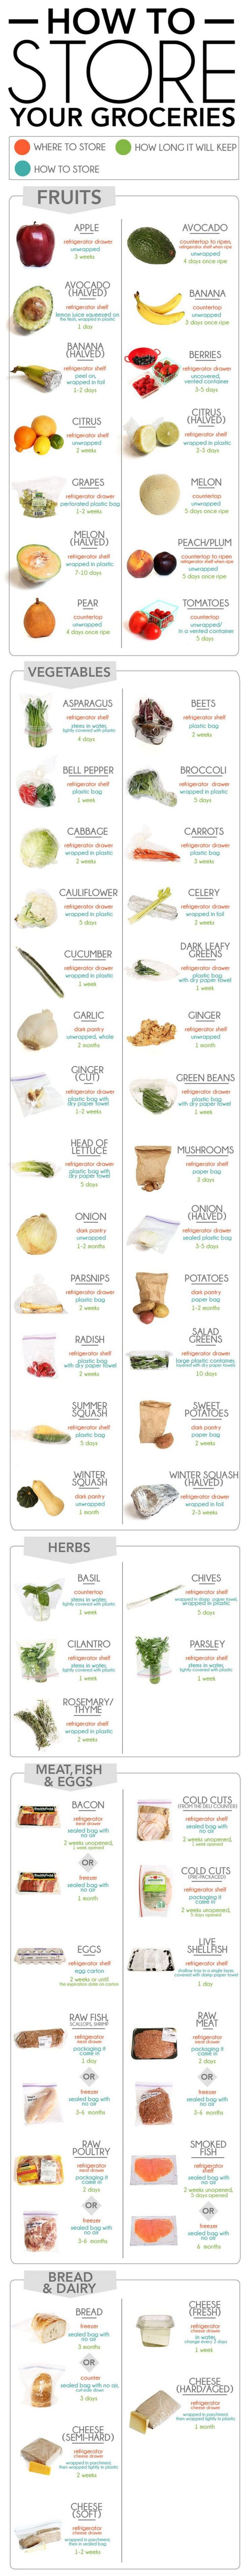 Common mistakes in the kitchen - How to Store Your Groceries.